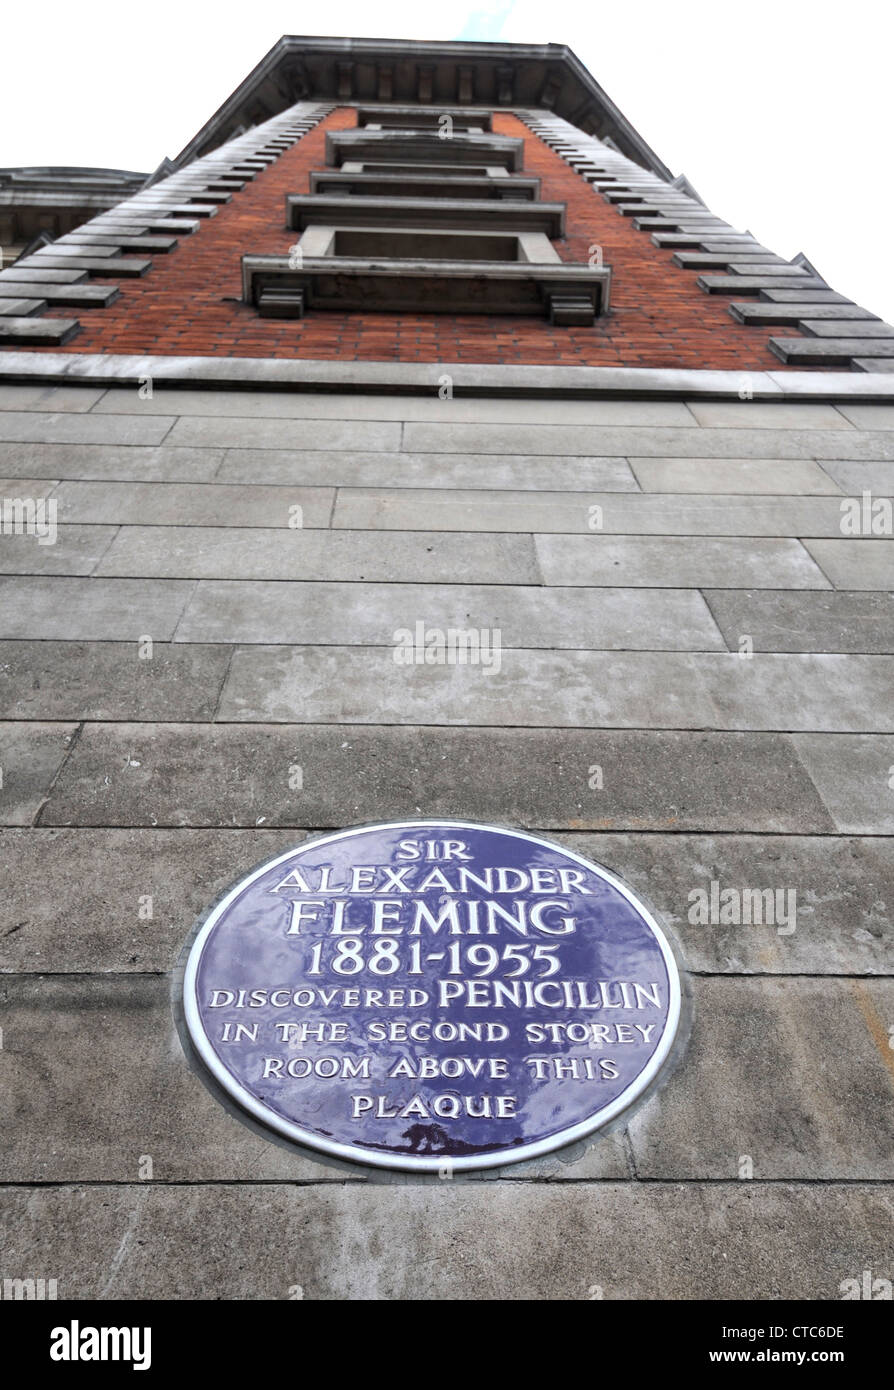 Plaque commémorative de Sir Alexander Fleming, Paddington, Londres, Angleterre, Royaume-Uni Photo Stock